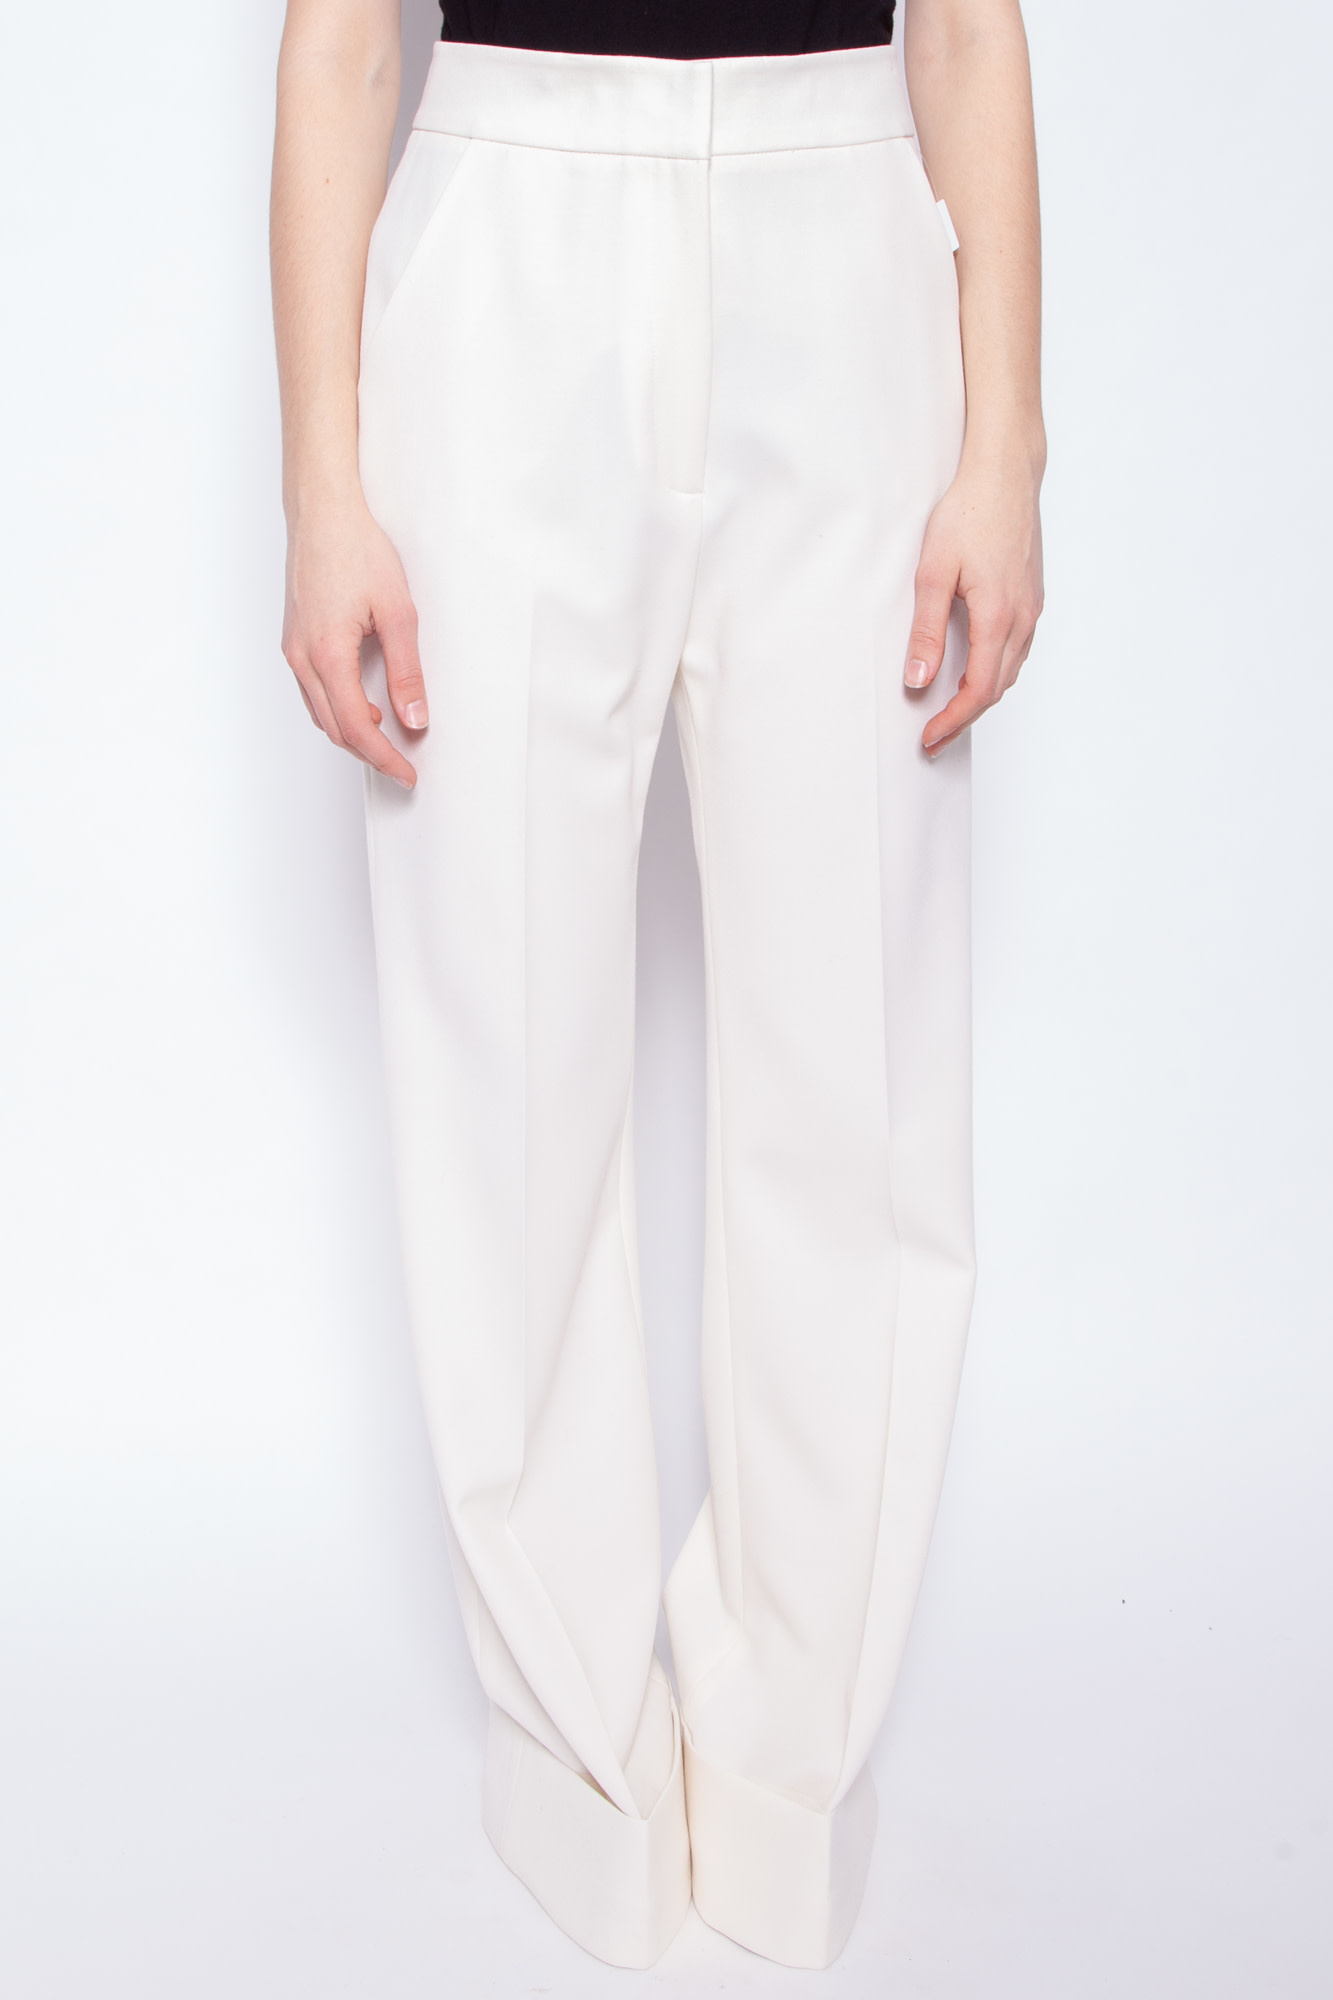 Smythe OFF-WHITE WIDE LEGS TROUSERS - NEW WITH TAGS